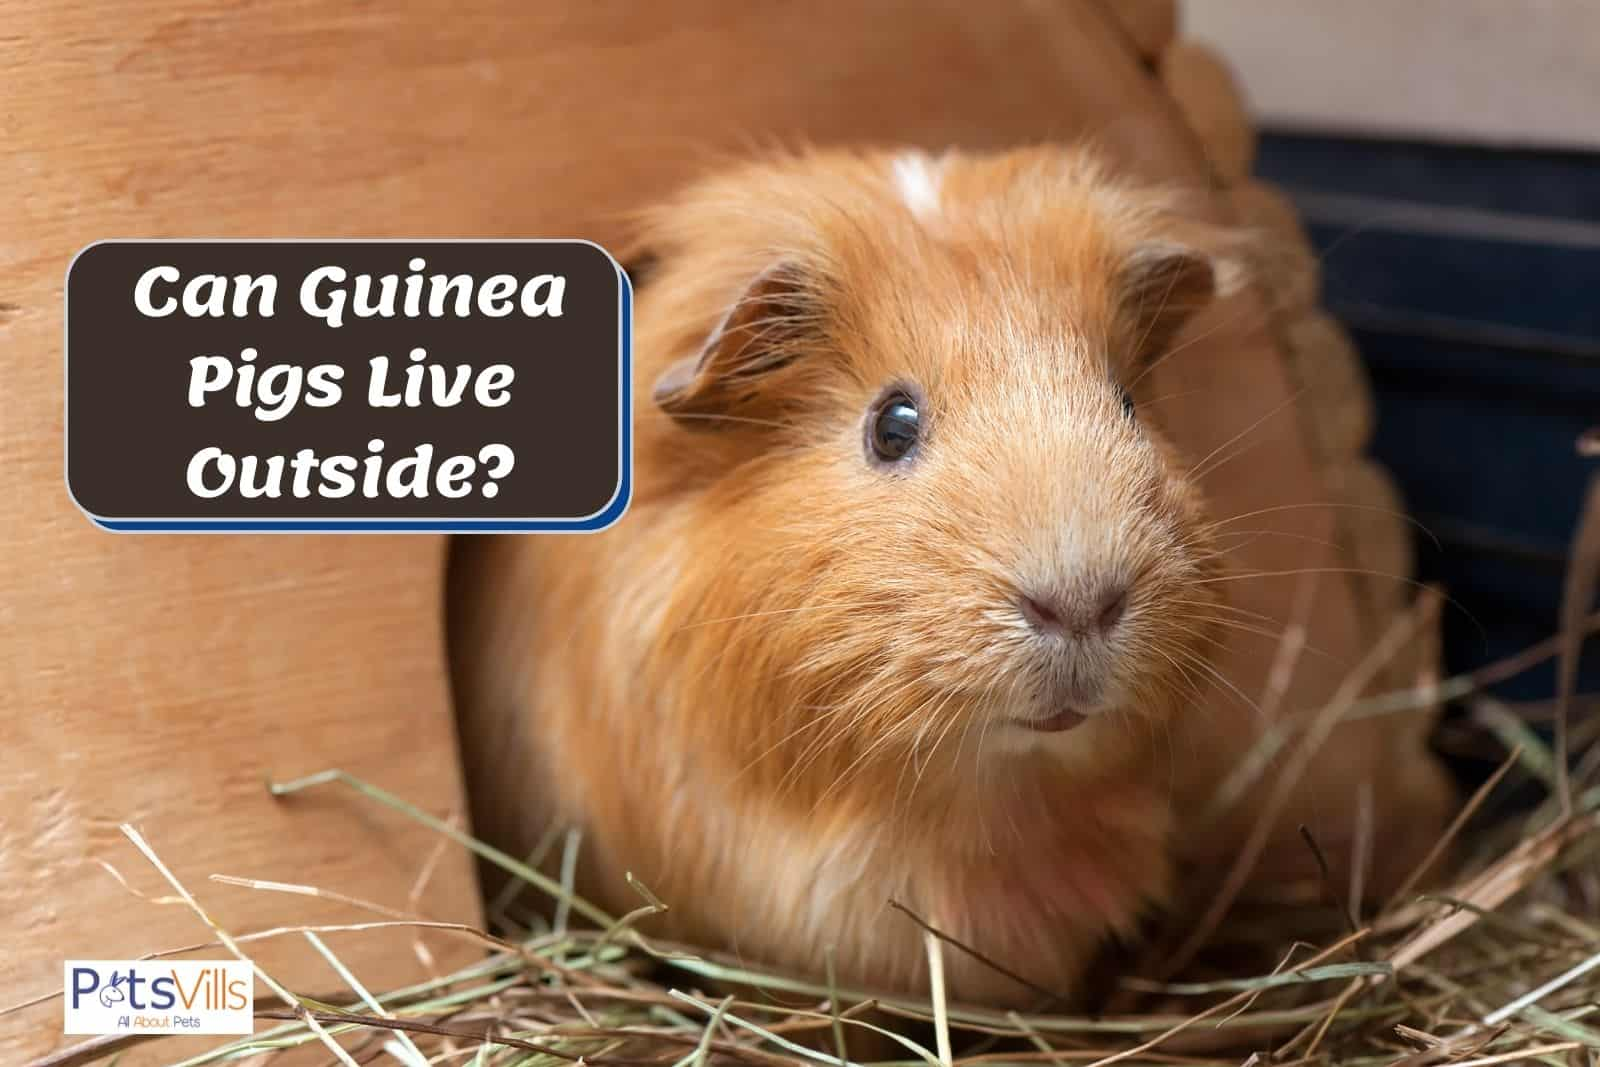 a guinea pig standing outside the hutch, so can guinea pigs live outside?